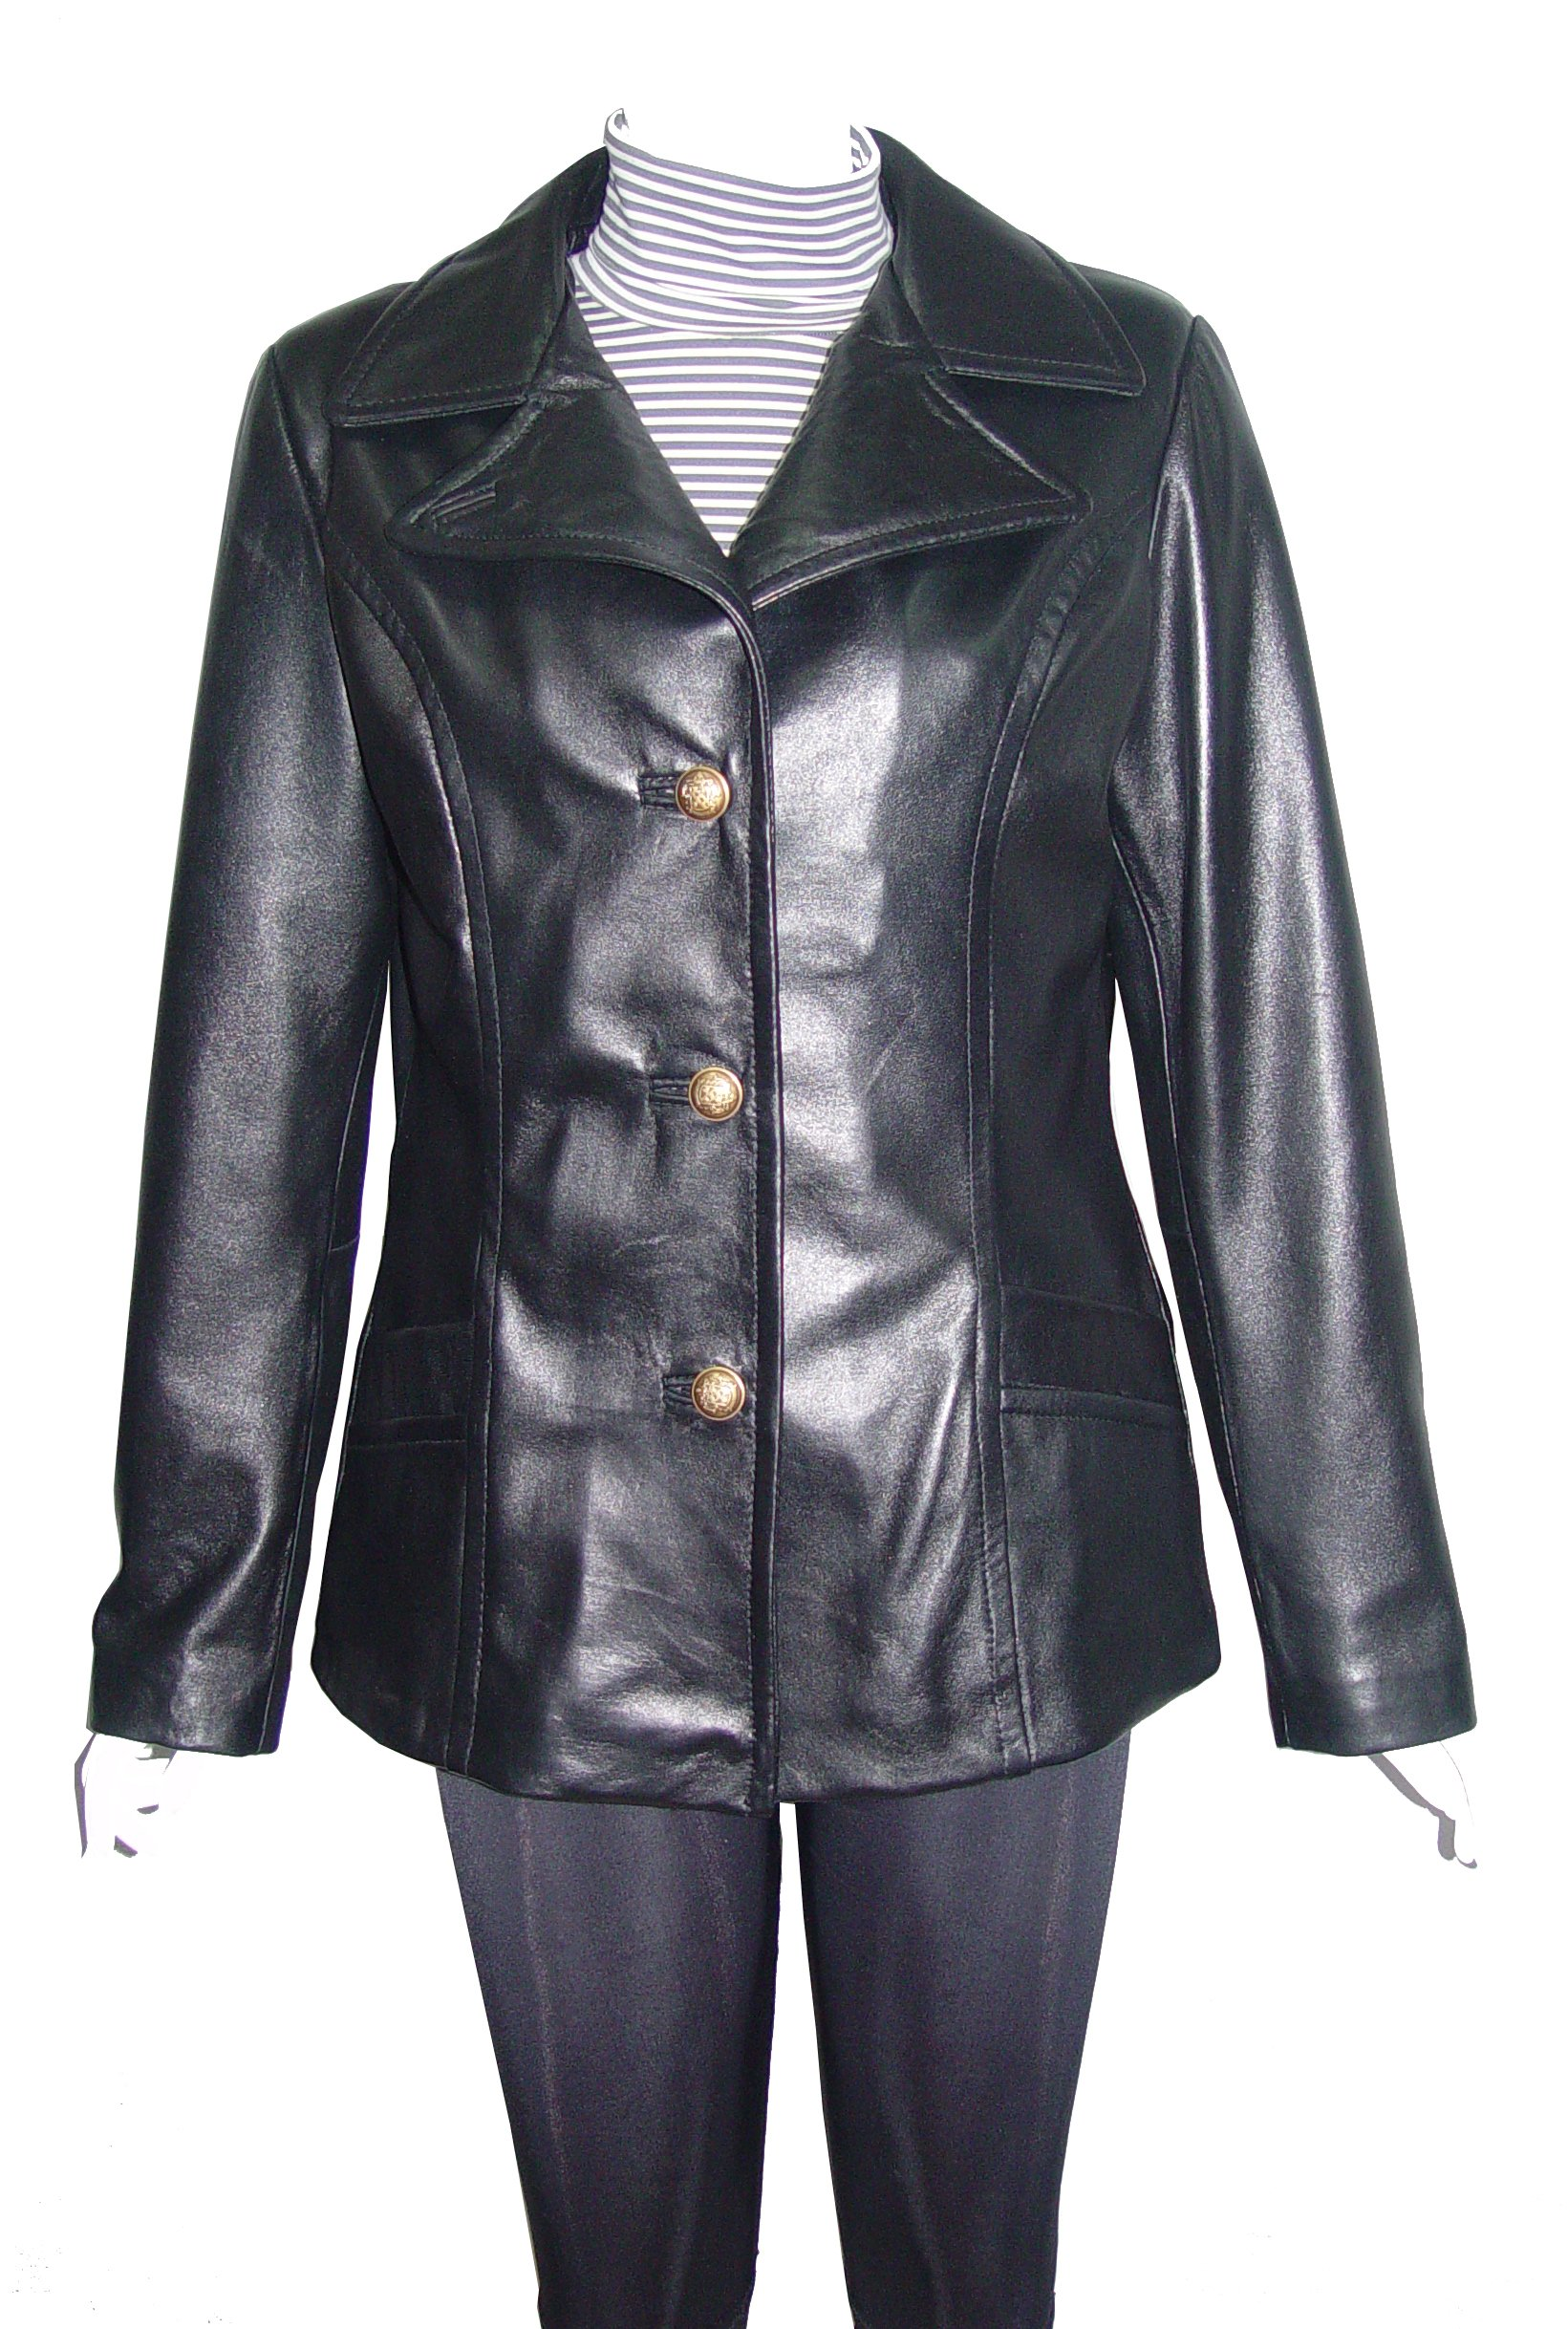 Nettailor 4101 Fitted Clean Leather Jacket Womens Classic Business Clothing